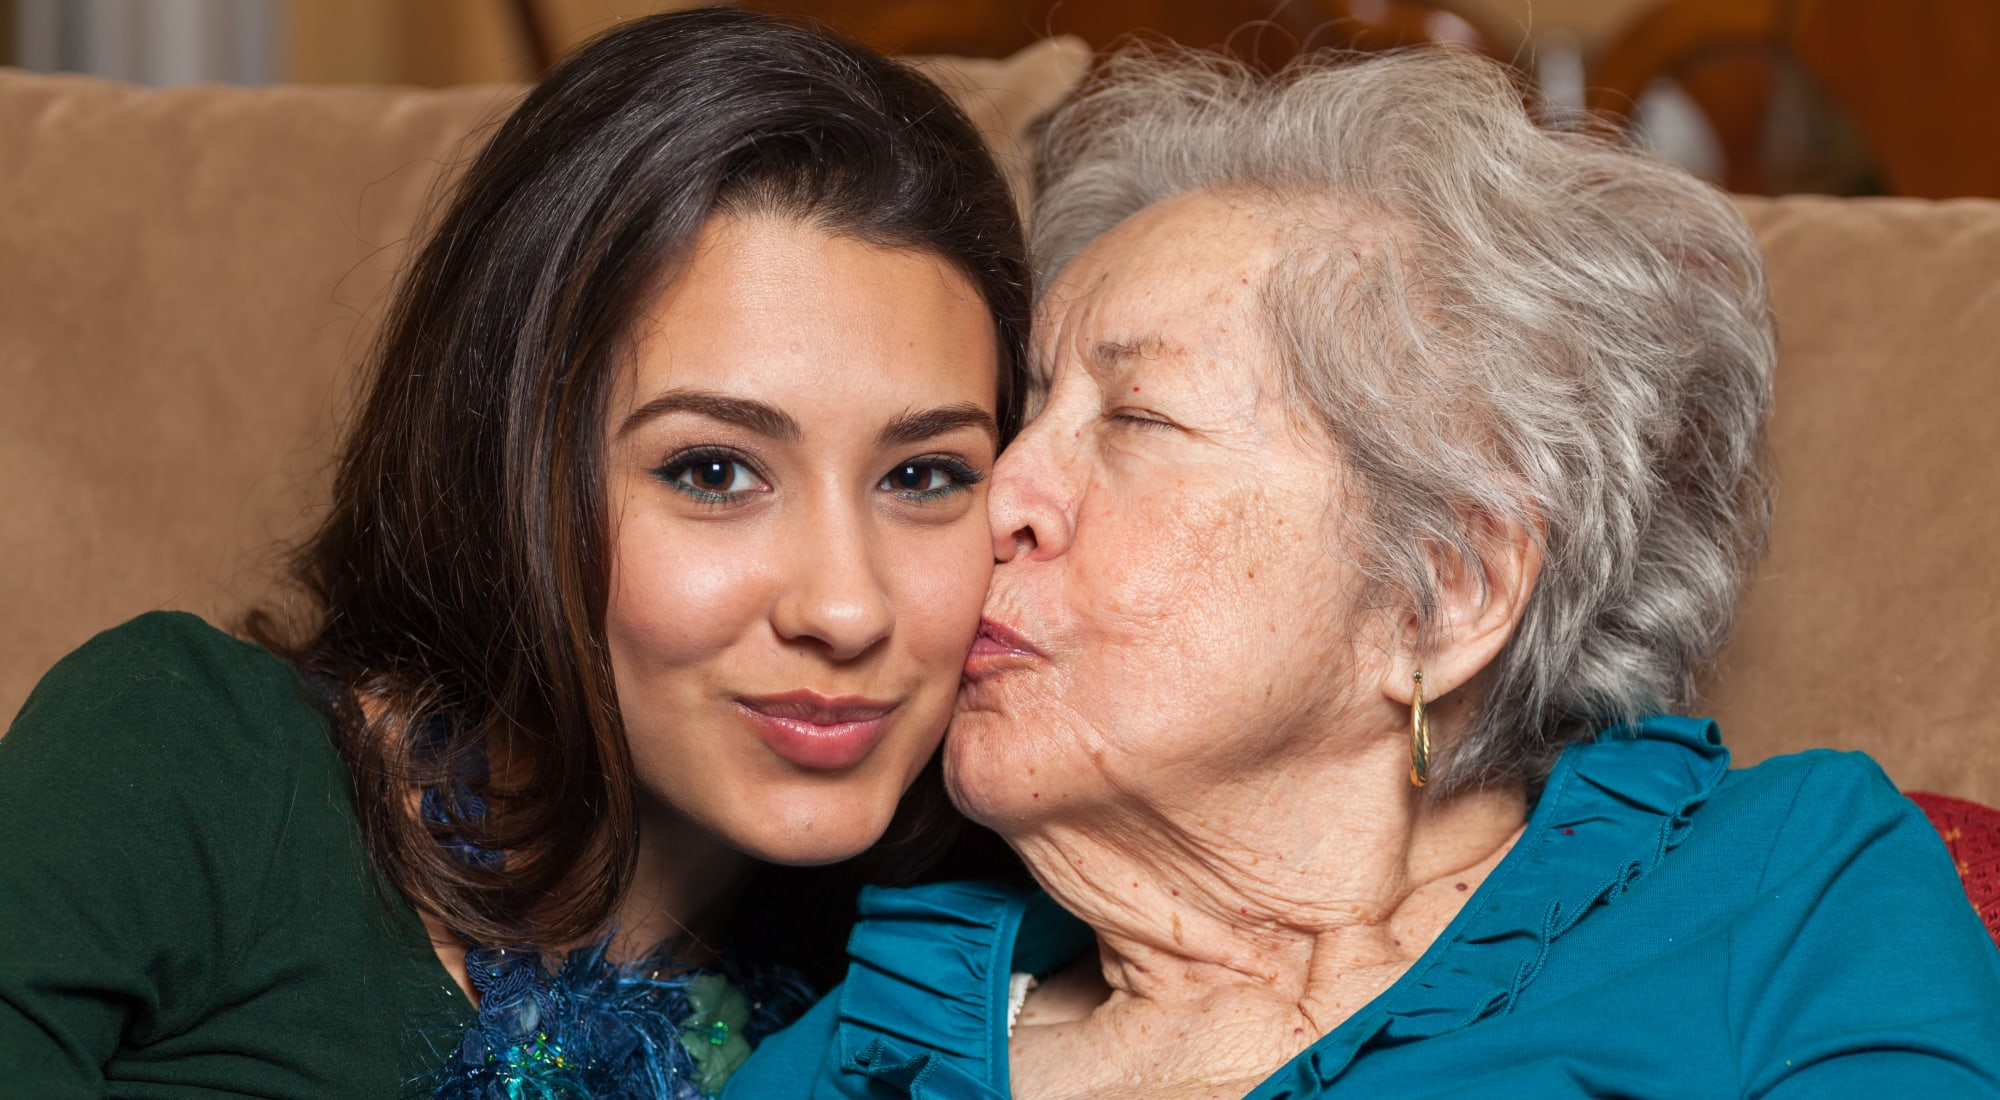 Resident and her granddaughter at Desert Peaks Assisted Living and Memory Care in Las Cruces, New Mexico